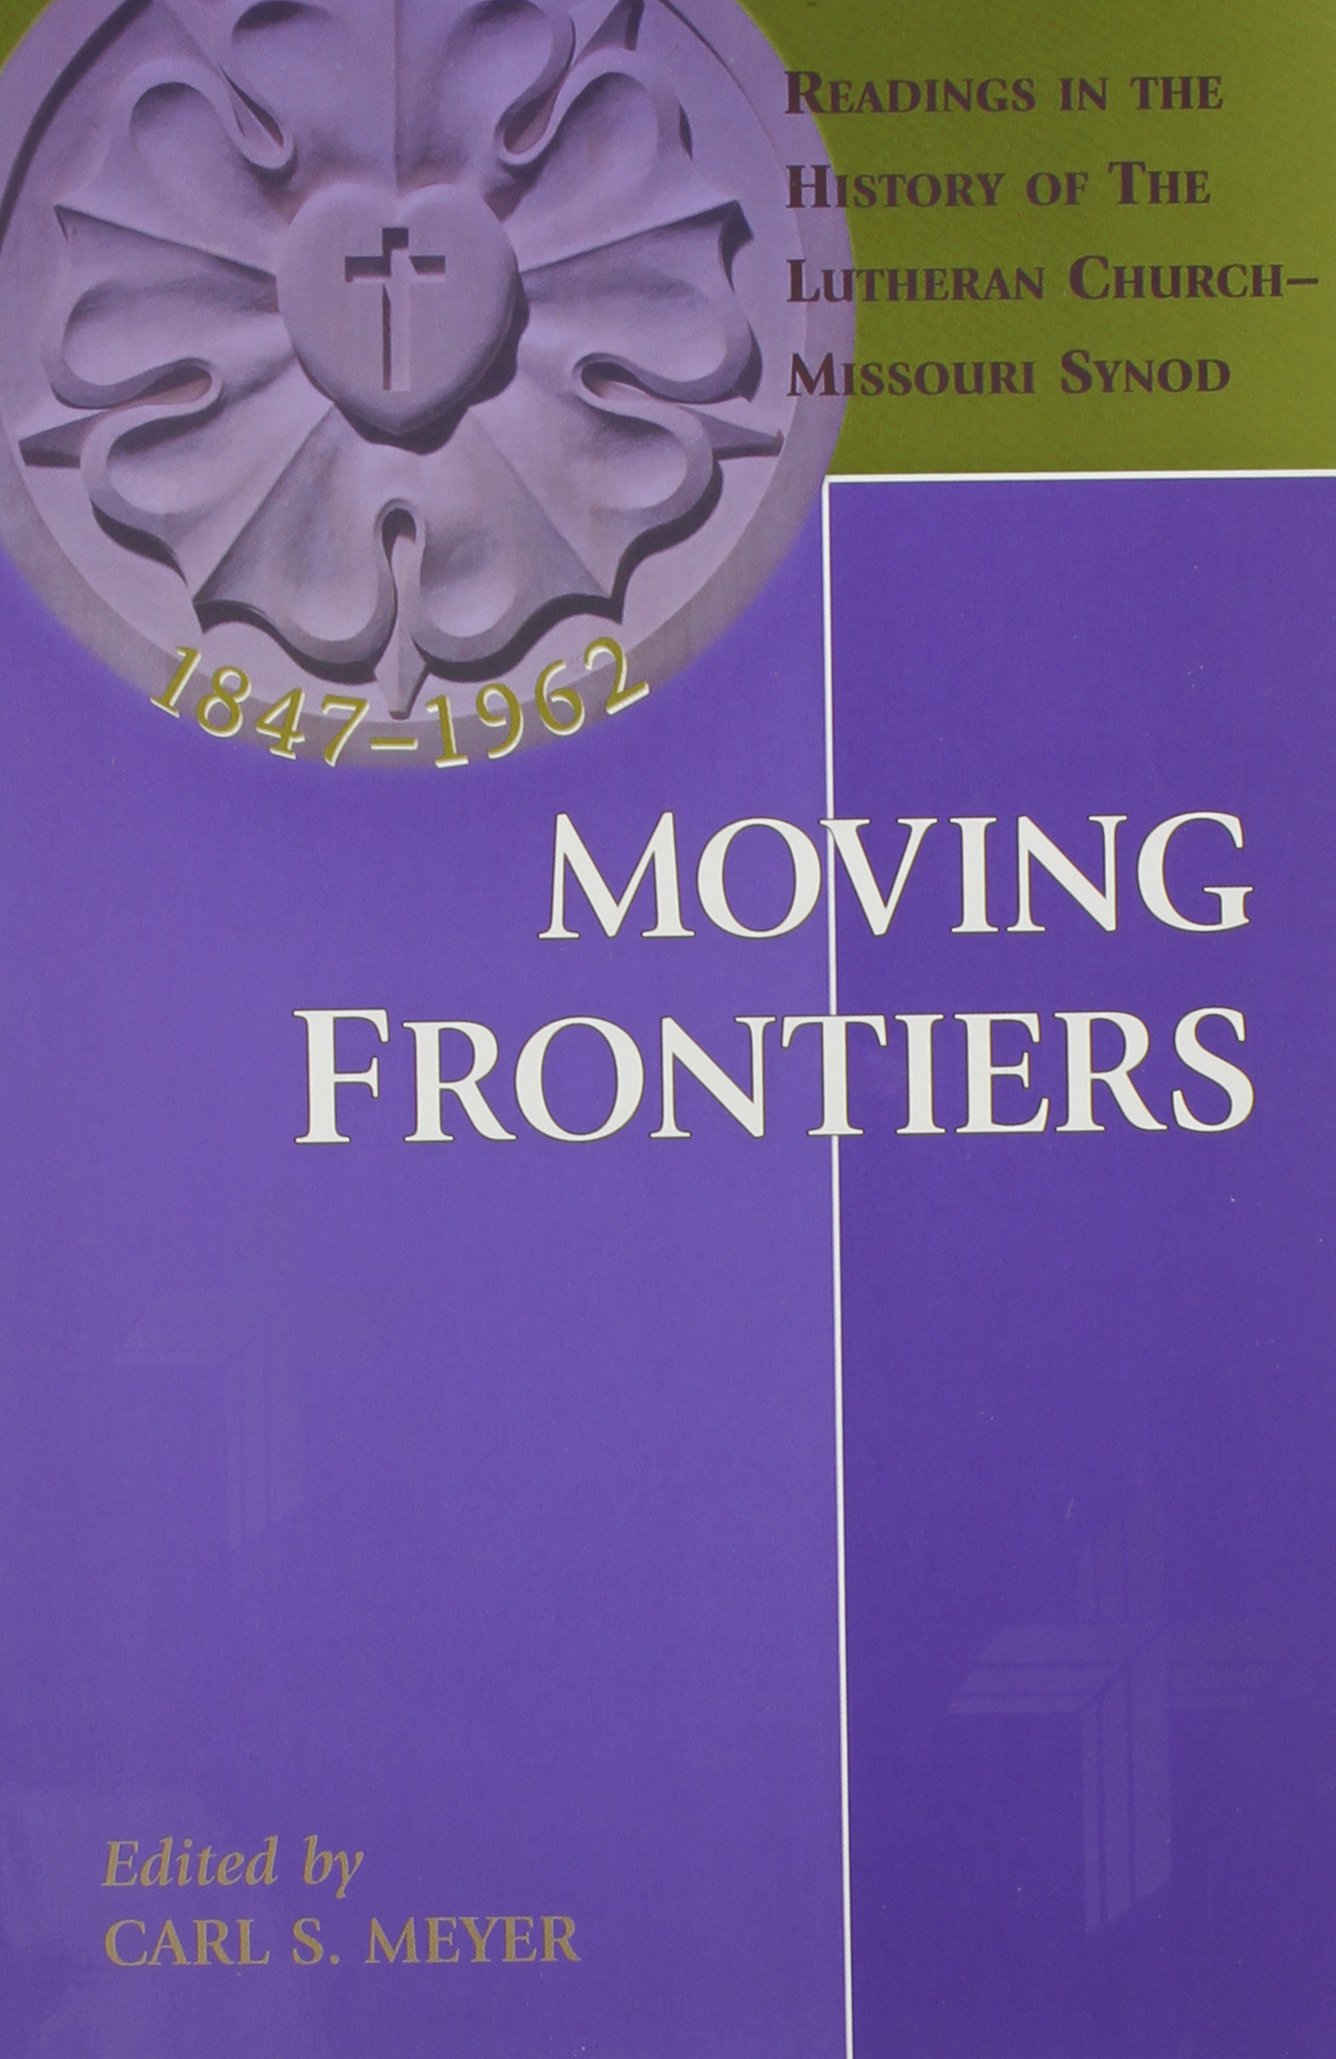 Moving frontiers readings in the history of the lutheran church moving frontiers readings in the history of the lutheran church missouri synod carl s meyer 9780570044611 amazon books fandeluxe Image collections